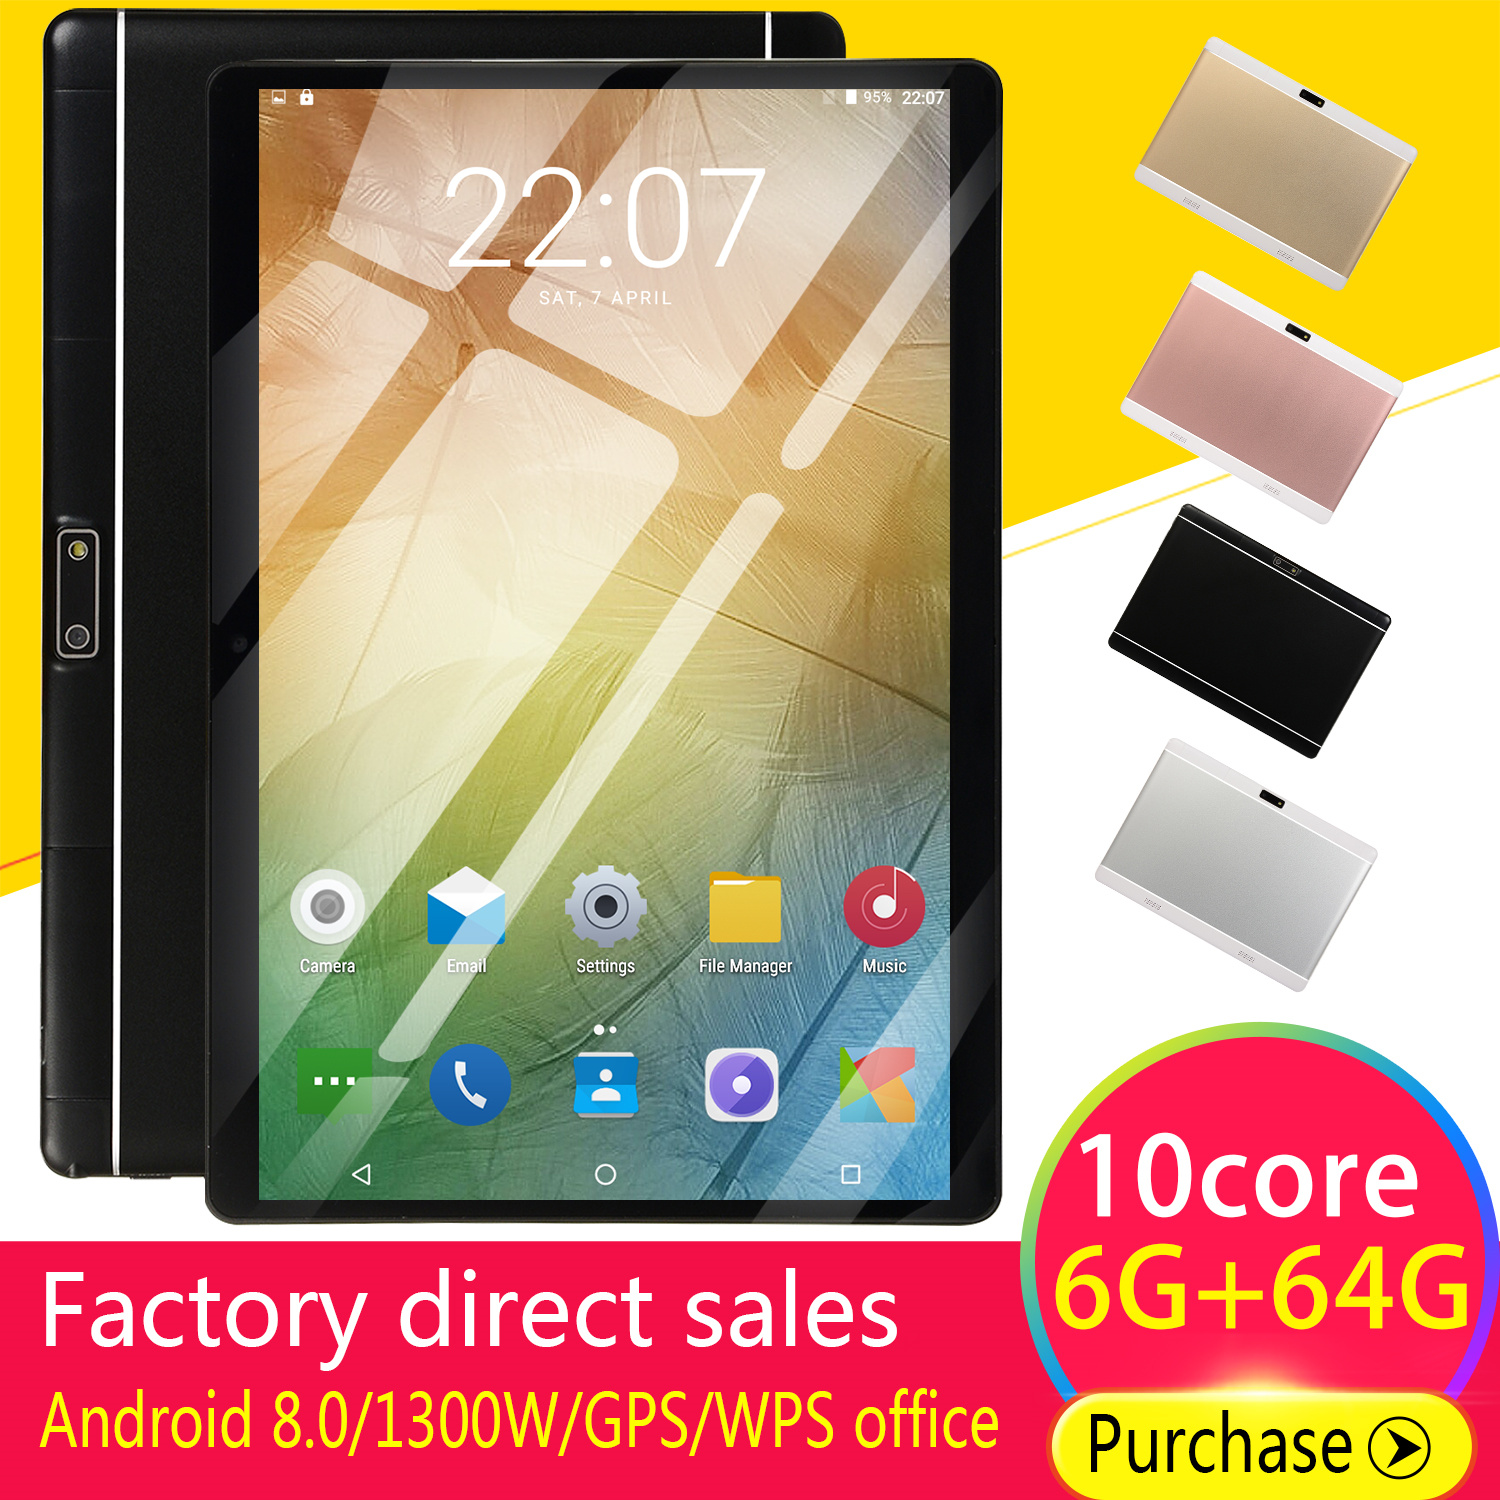 2020 WiFi Tablet PC 10 Inch Ten Core 4G Network Android 8.1 Arge 2560*1600 IPS Screen Dual SIM Dual Camera Rear 13.0 MP IPS